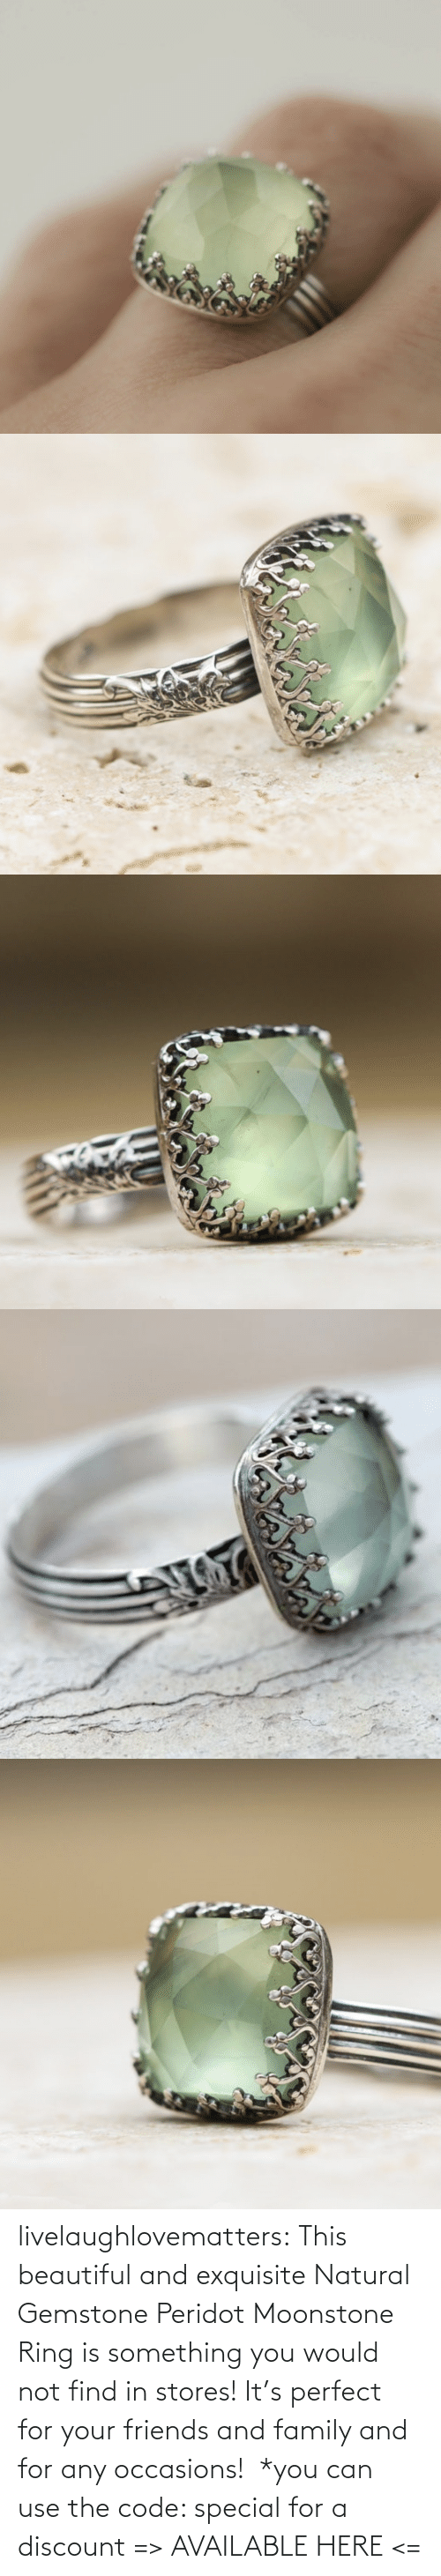 Discount: livelaughlovematters: This beautiful and exquisiteNatural Gemstone Peridot Moonstone Ring is something you would not find in stores! It's perfect for your friends and family and for any occasions! *you can use the code: special for a discount => AVAILABLE HERE <=